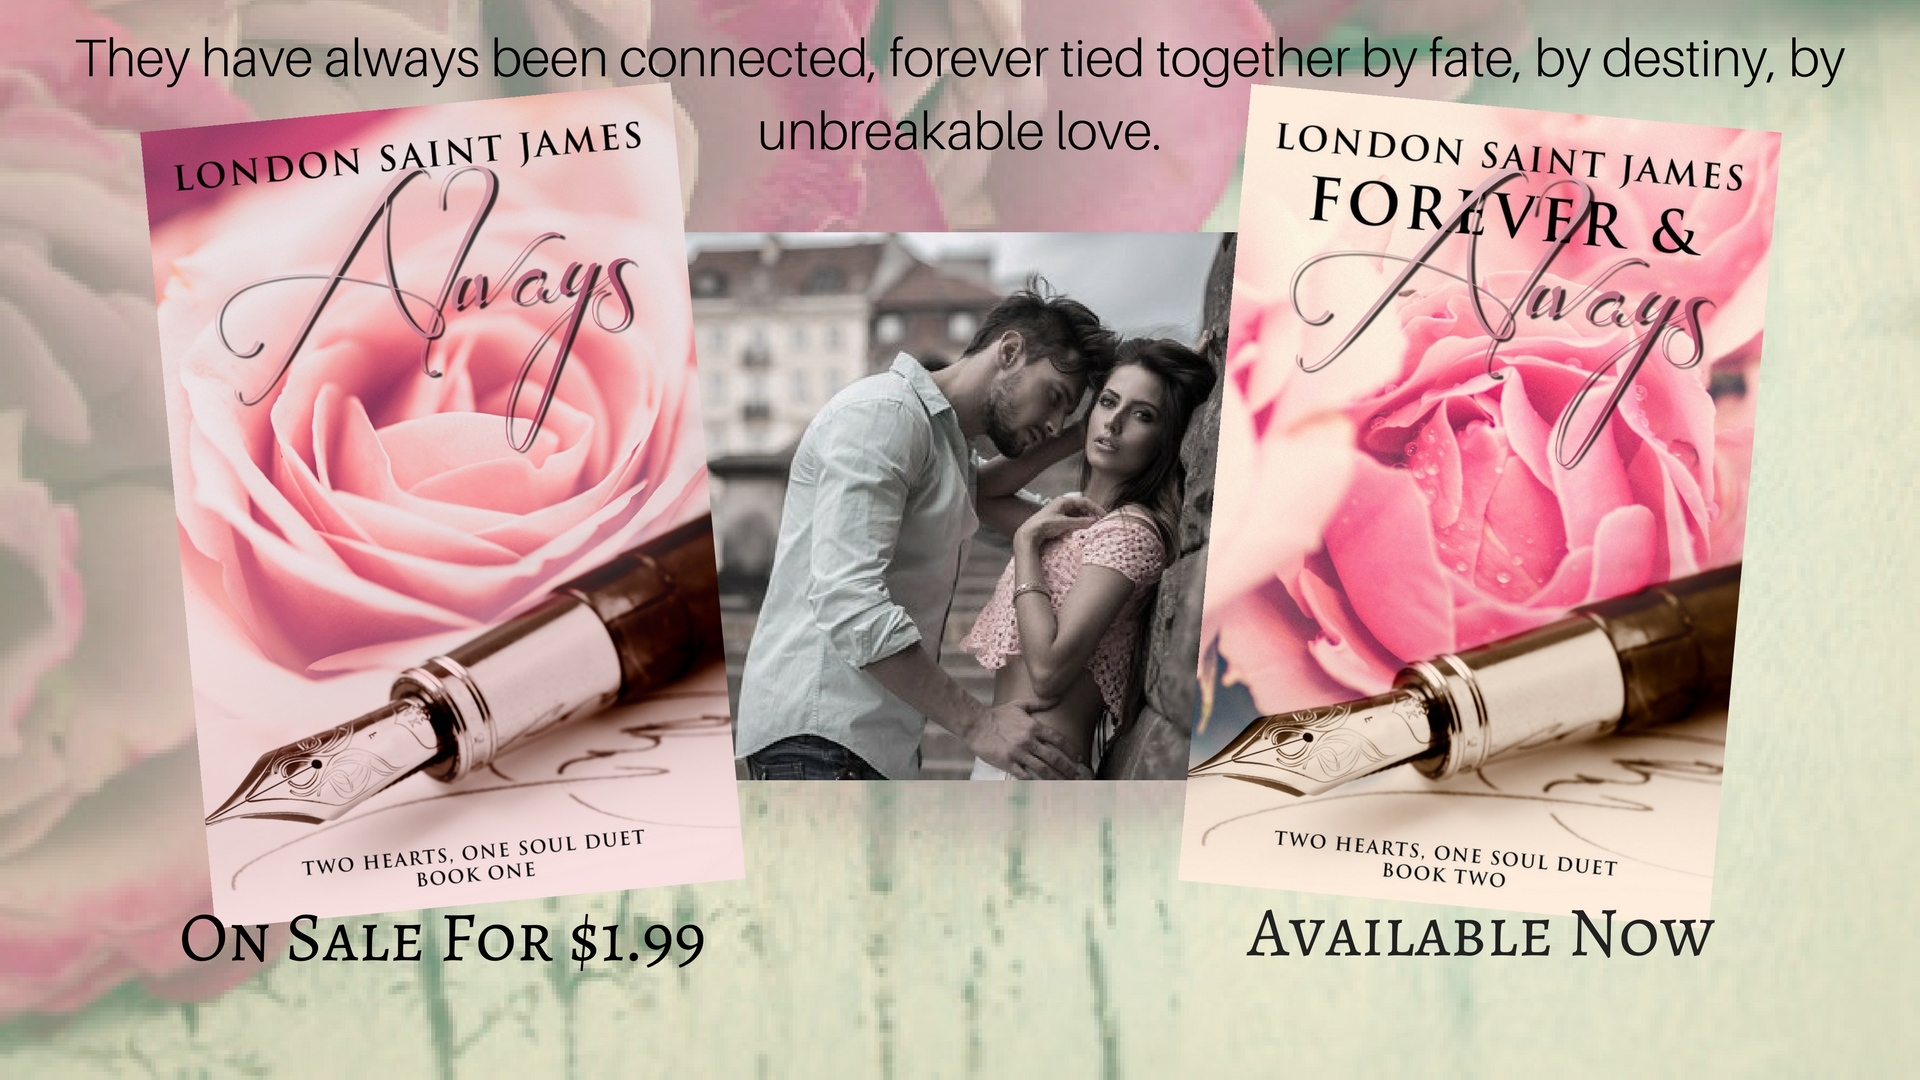 London Saint James: Always - on sale for $1.99 | Forever & Always - available now!